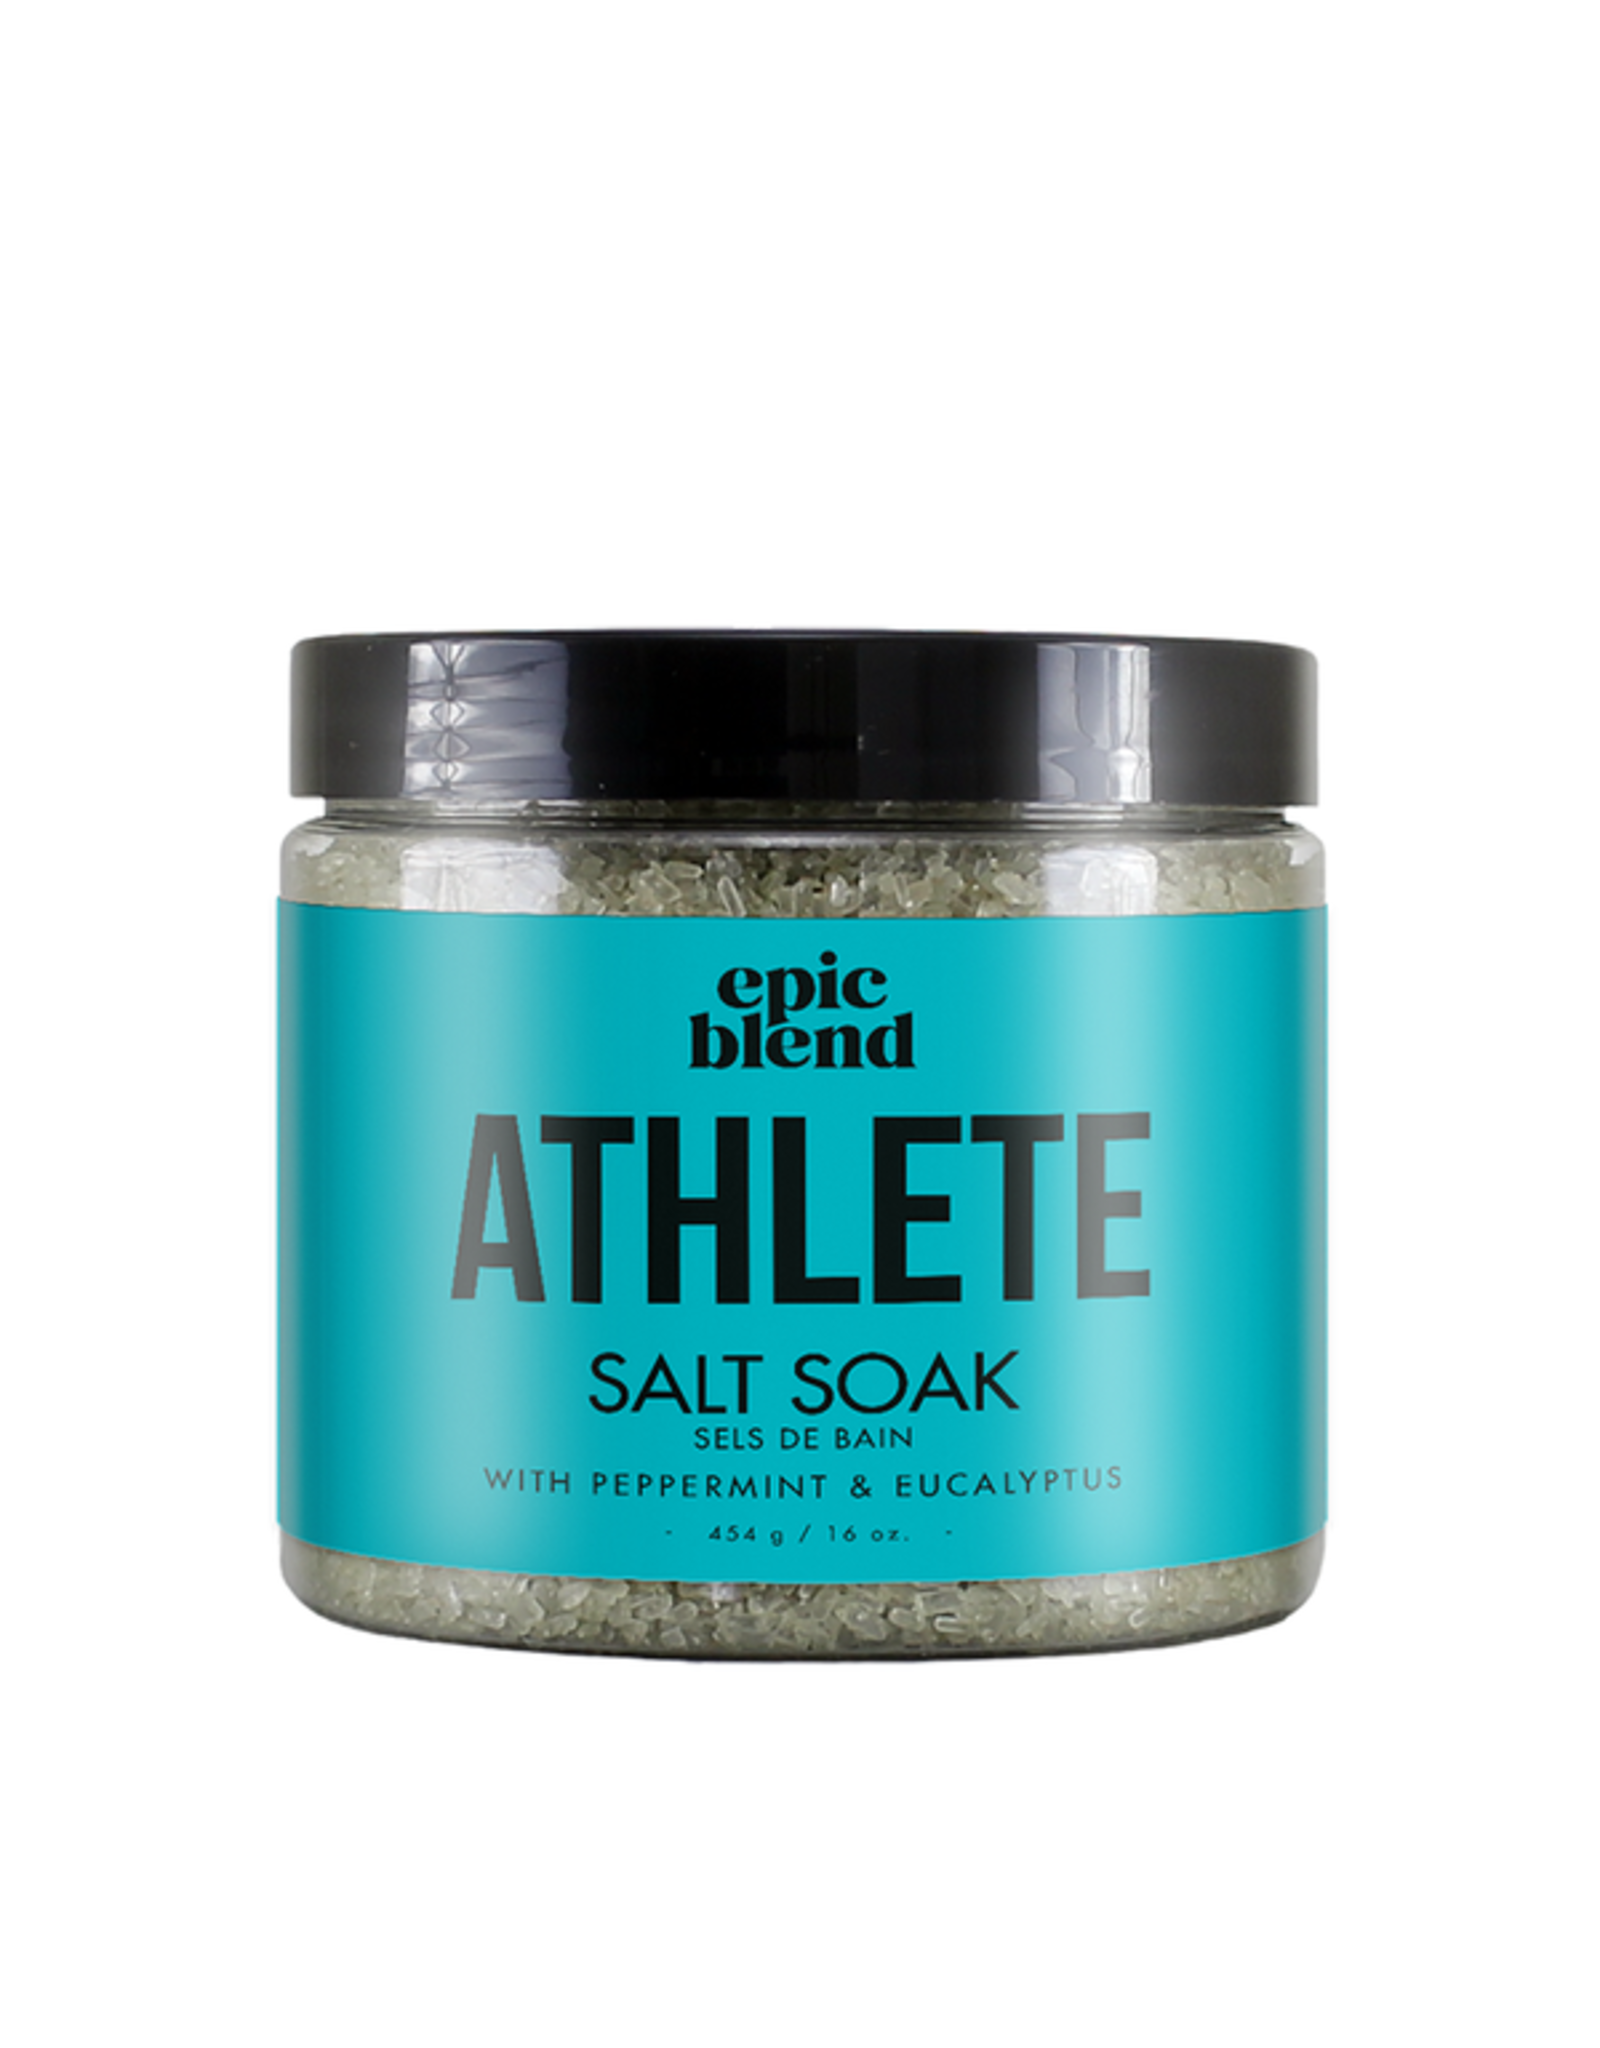 Epic Blend Athlete Salt Soak